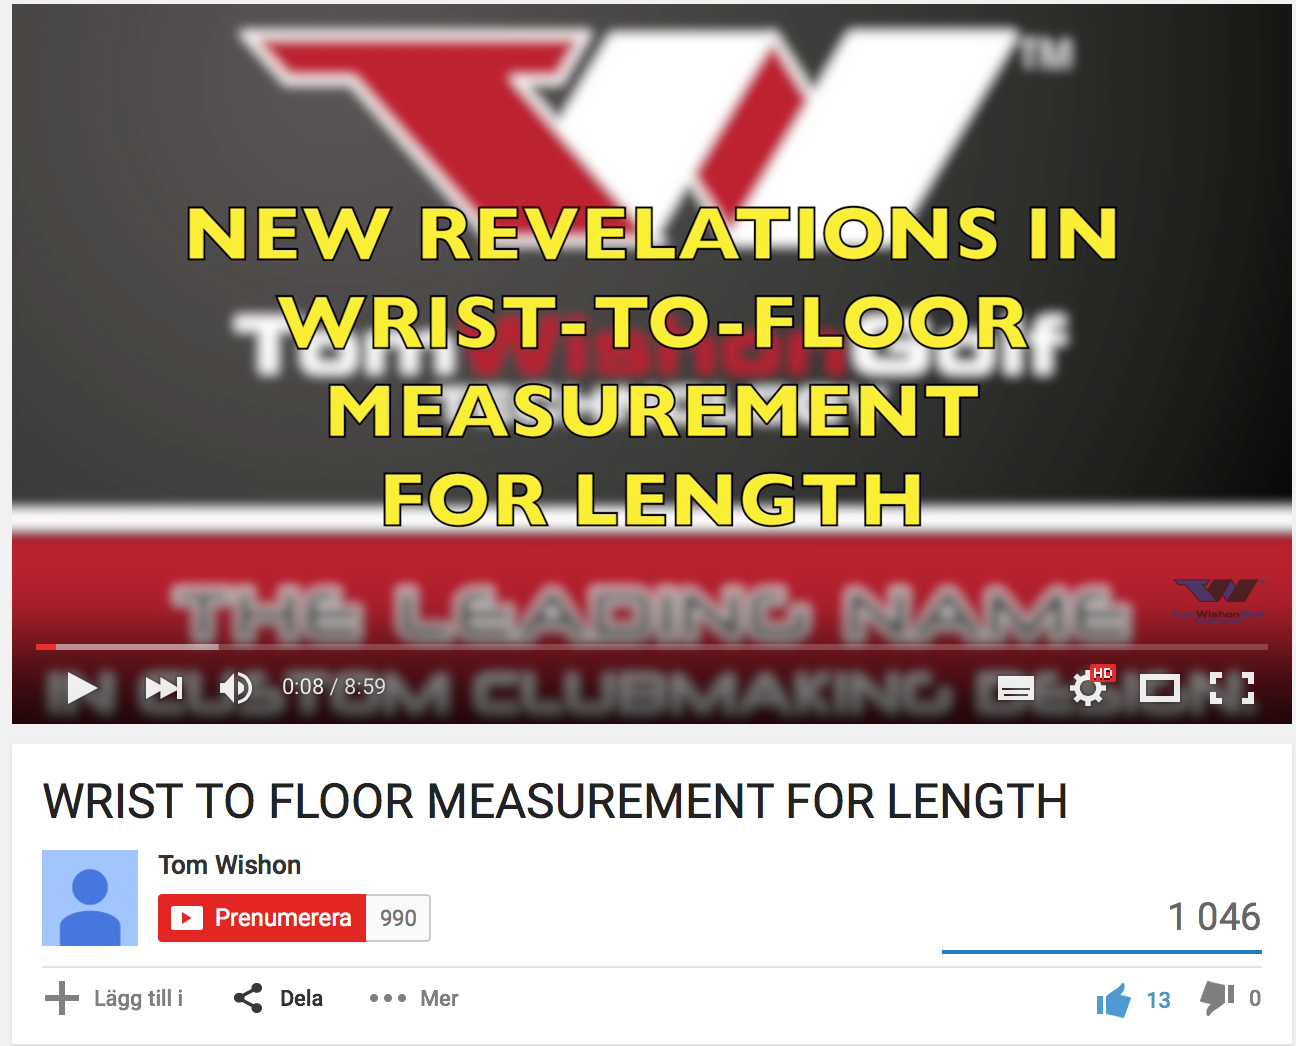 WRIST TO FLOOR MEASUREMENT FOR LENGTH